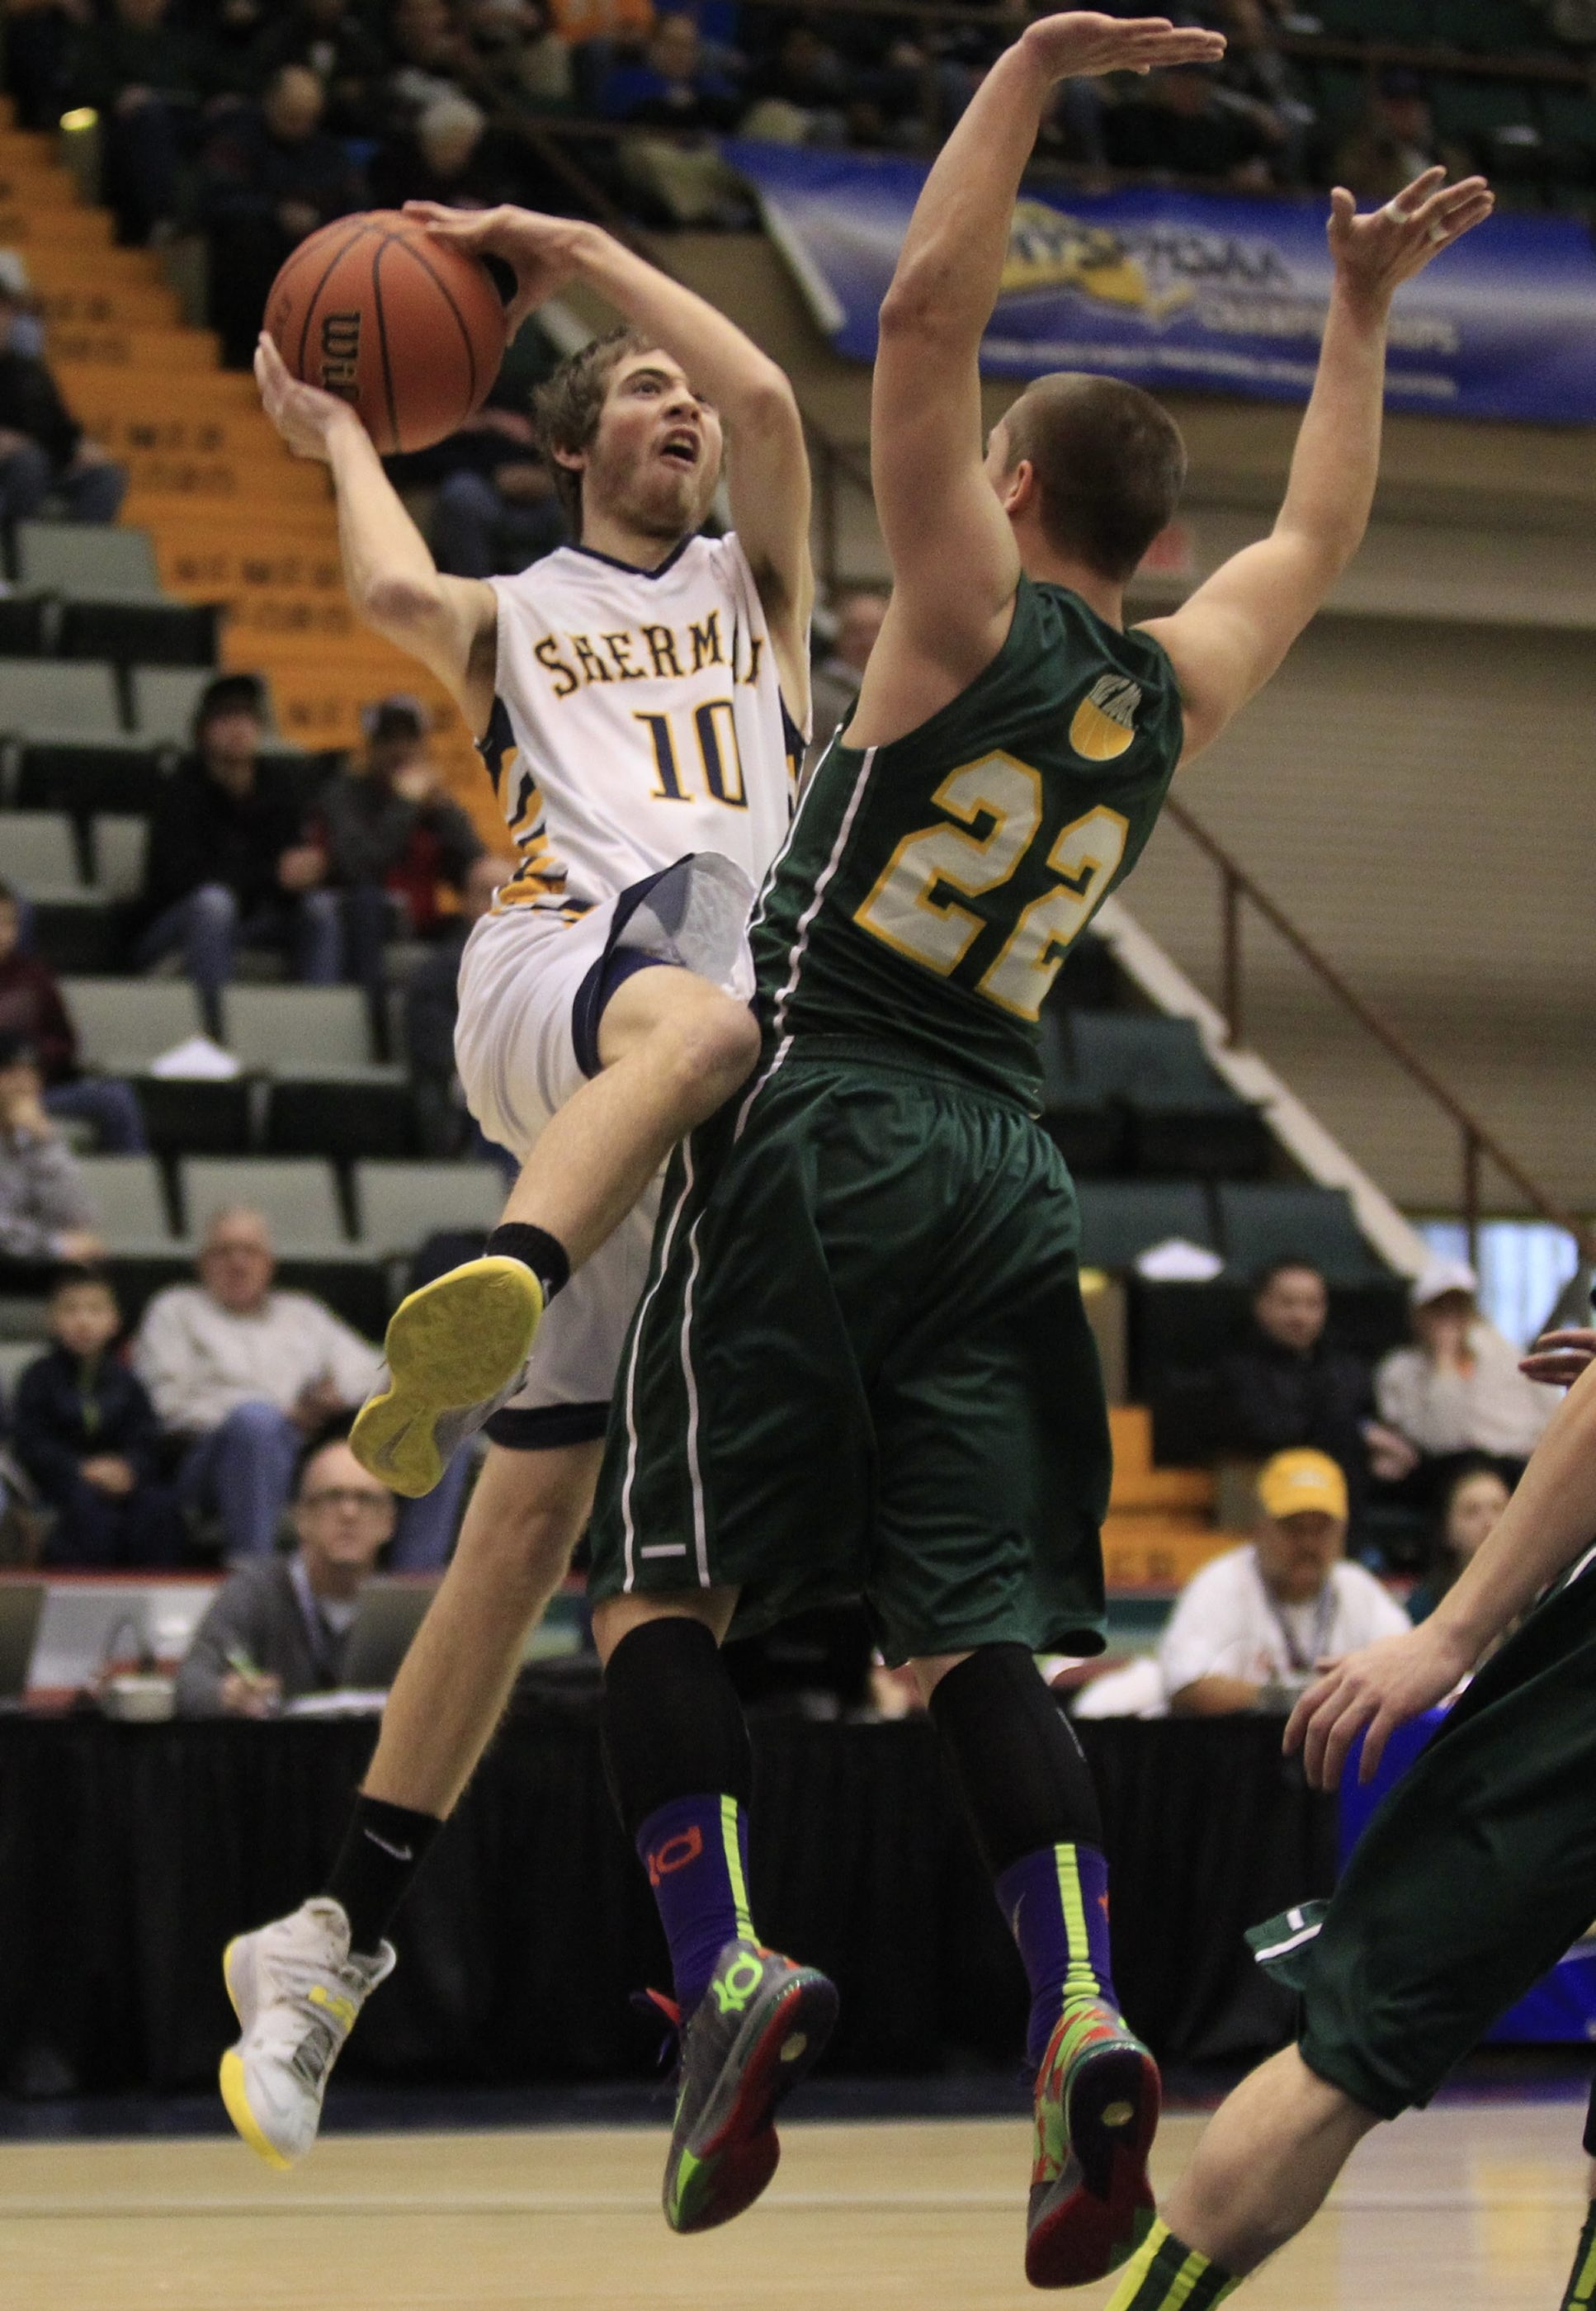 Sherman's Ryan Myers drives to the basket against Coleman Catholic's Kevin Davis.